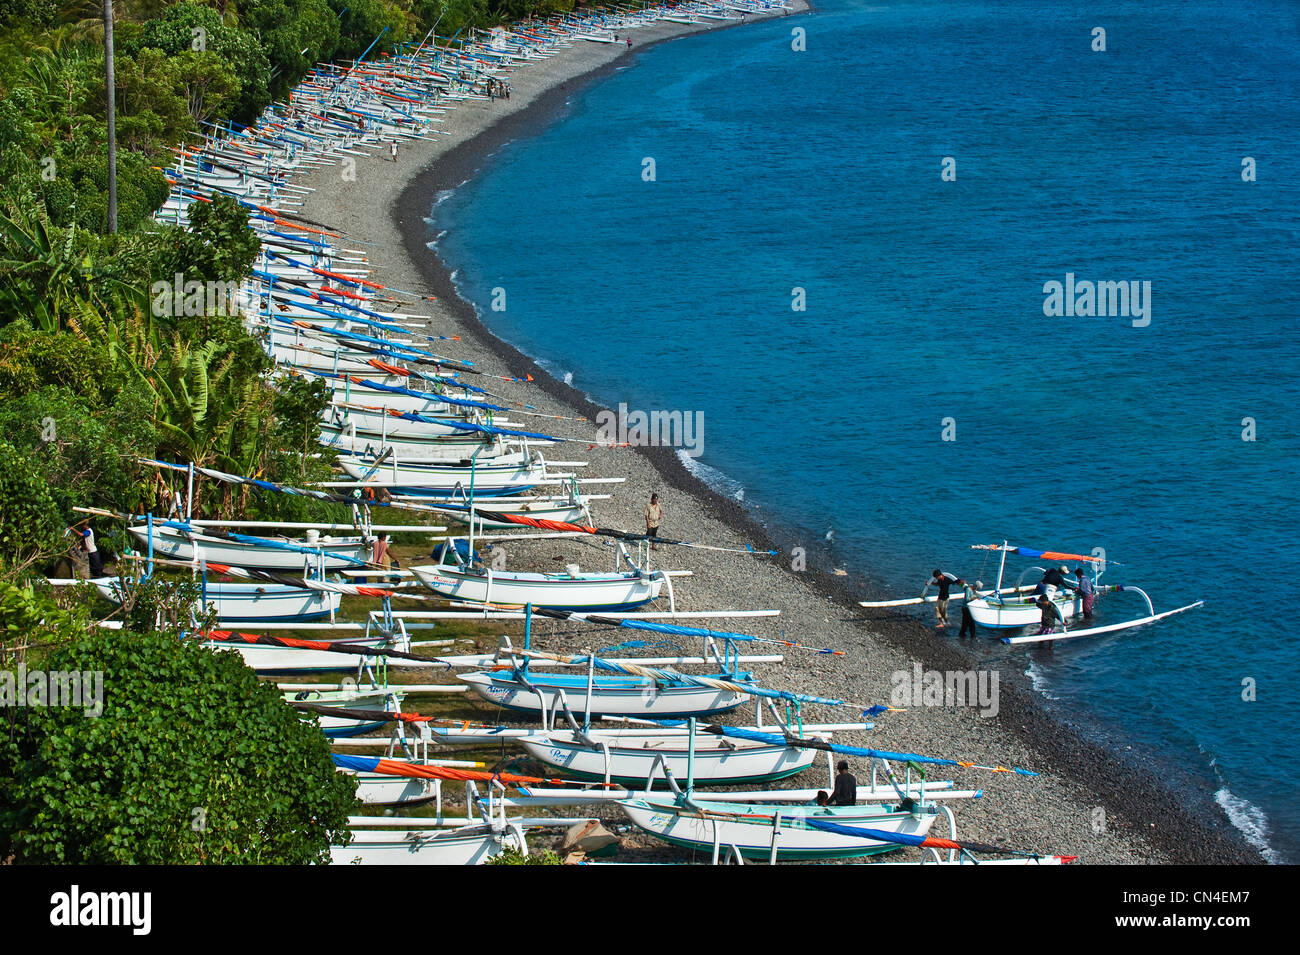 Indonesia, Bali Island, Amed village, canoe called Perahunelayan on Bunutan beach - Stock Image